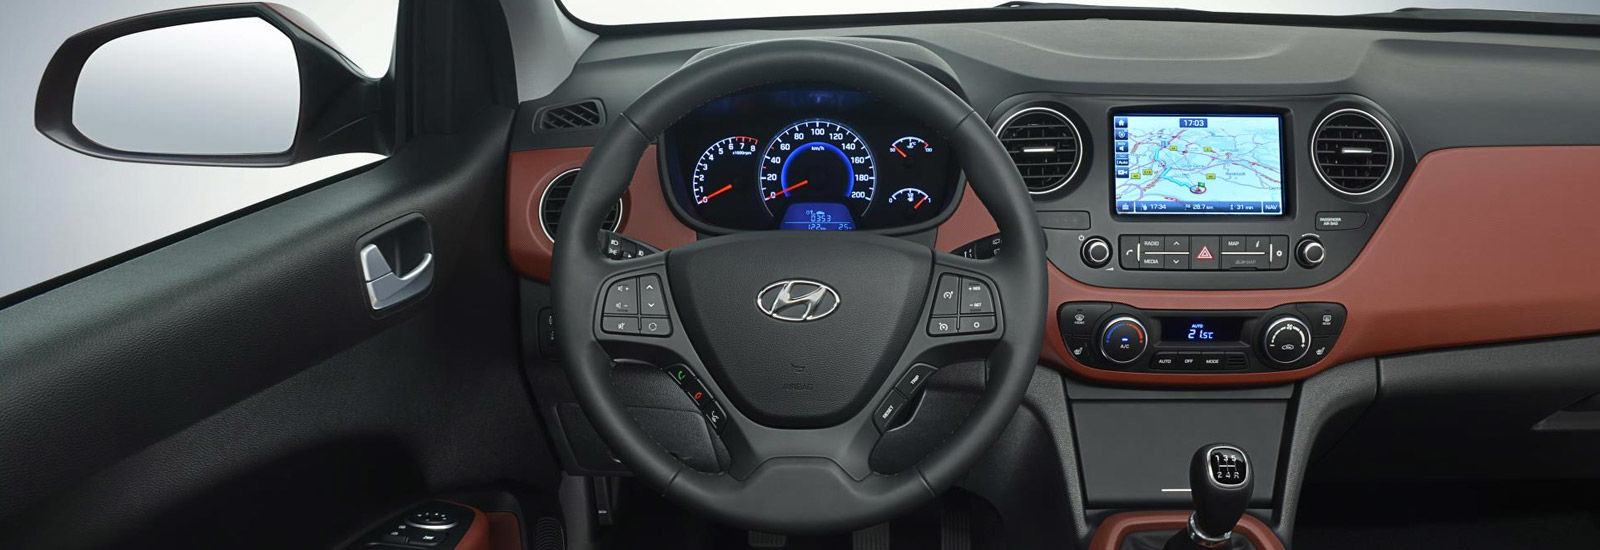 2017 Hyundai i10 facelift: complete guide | carwow